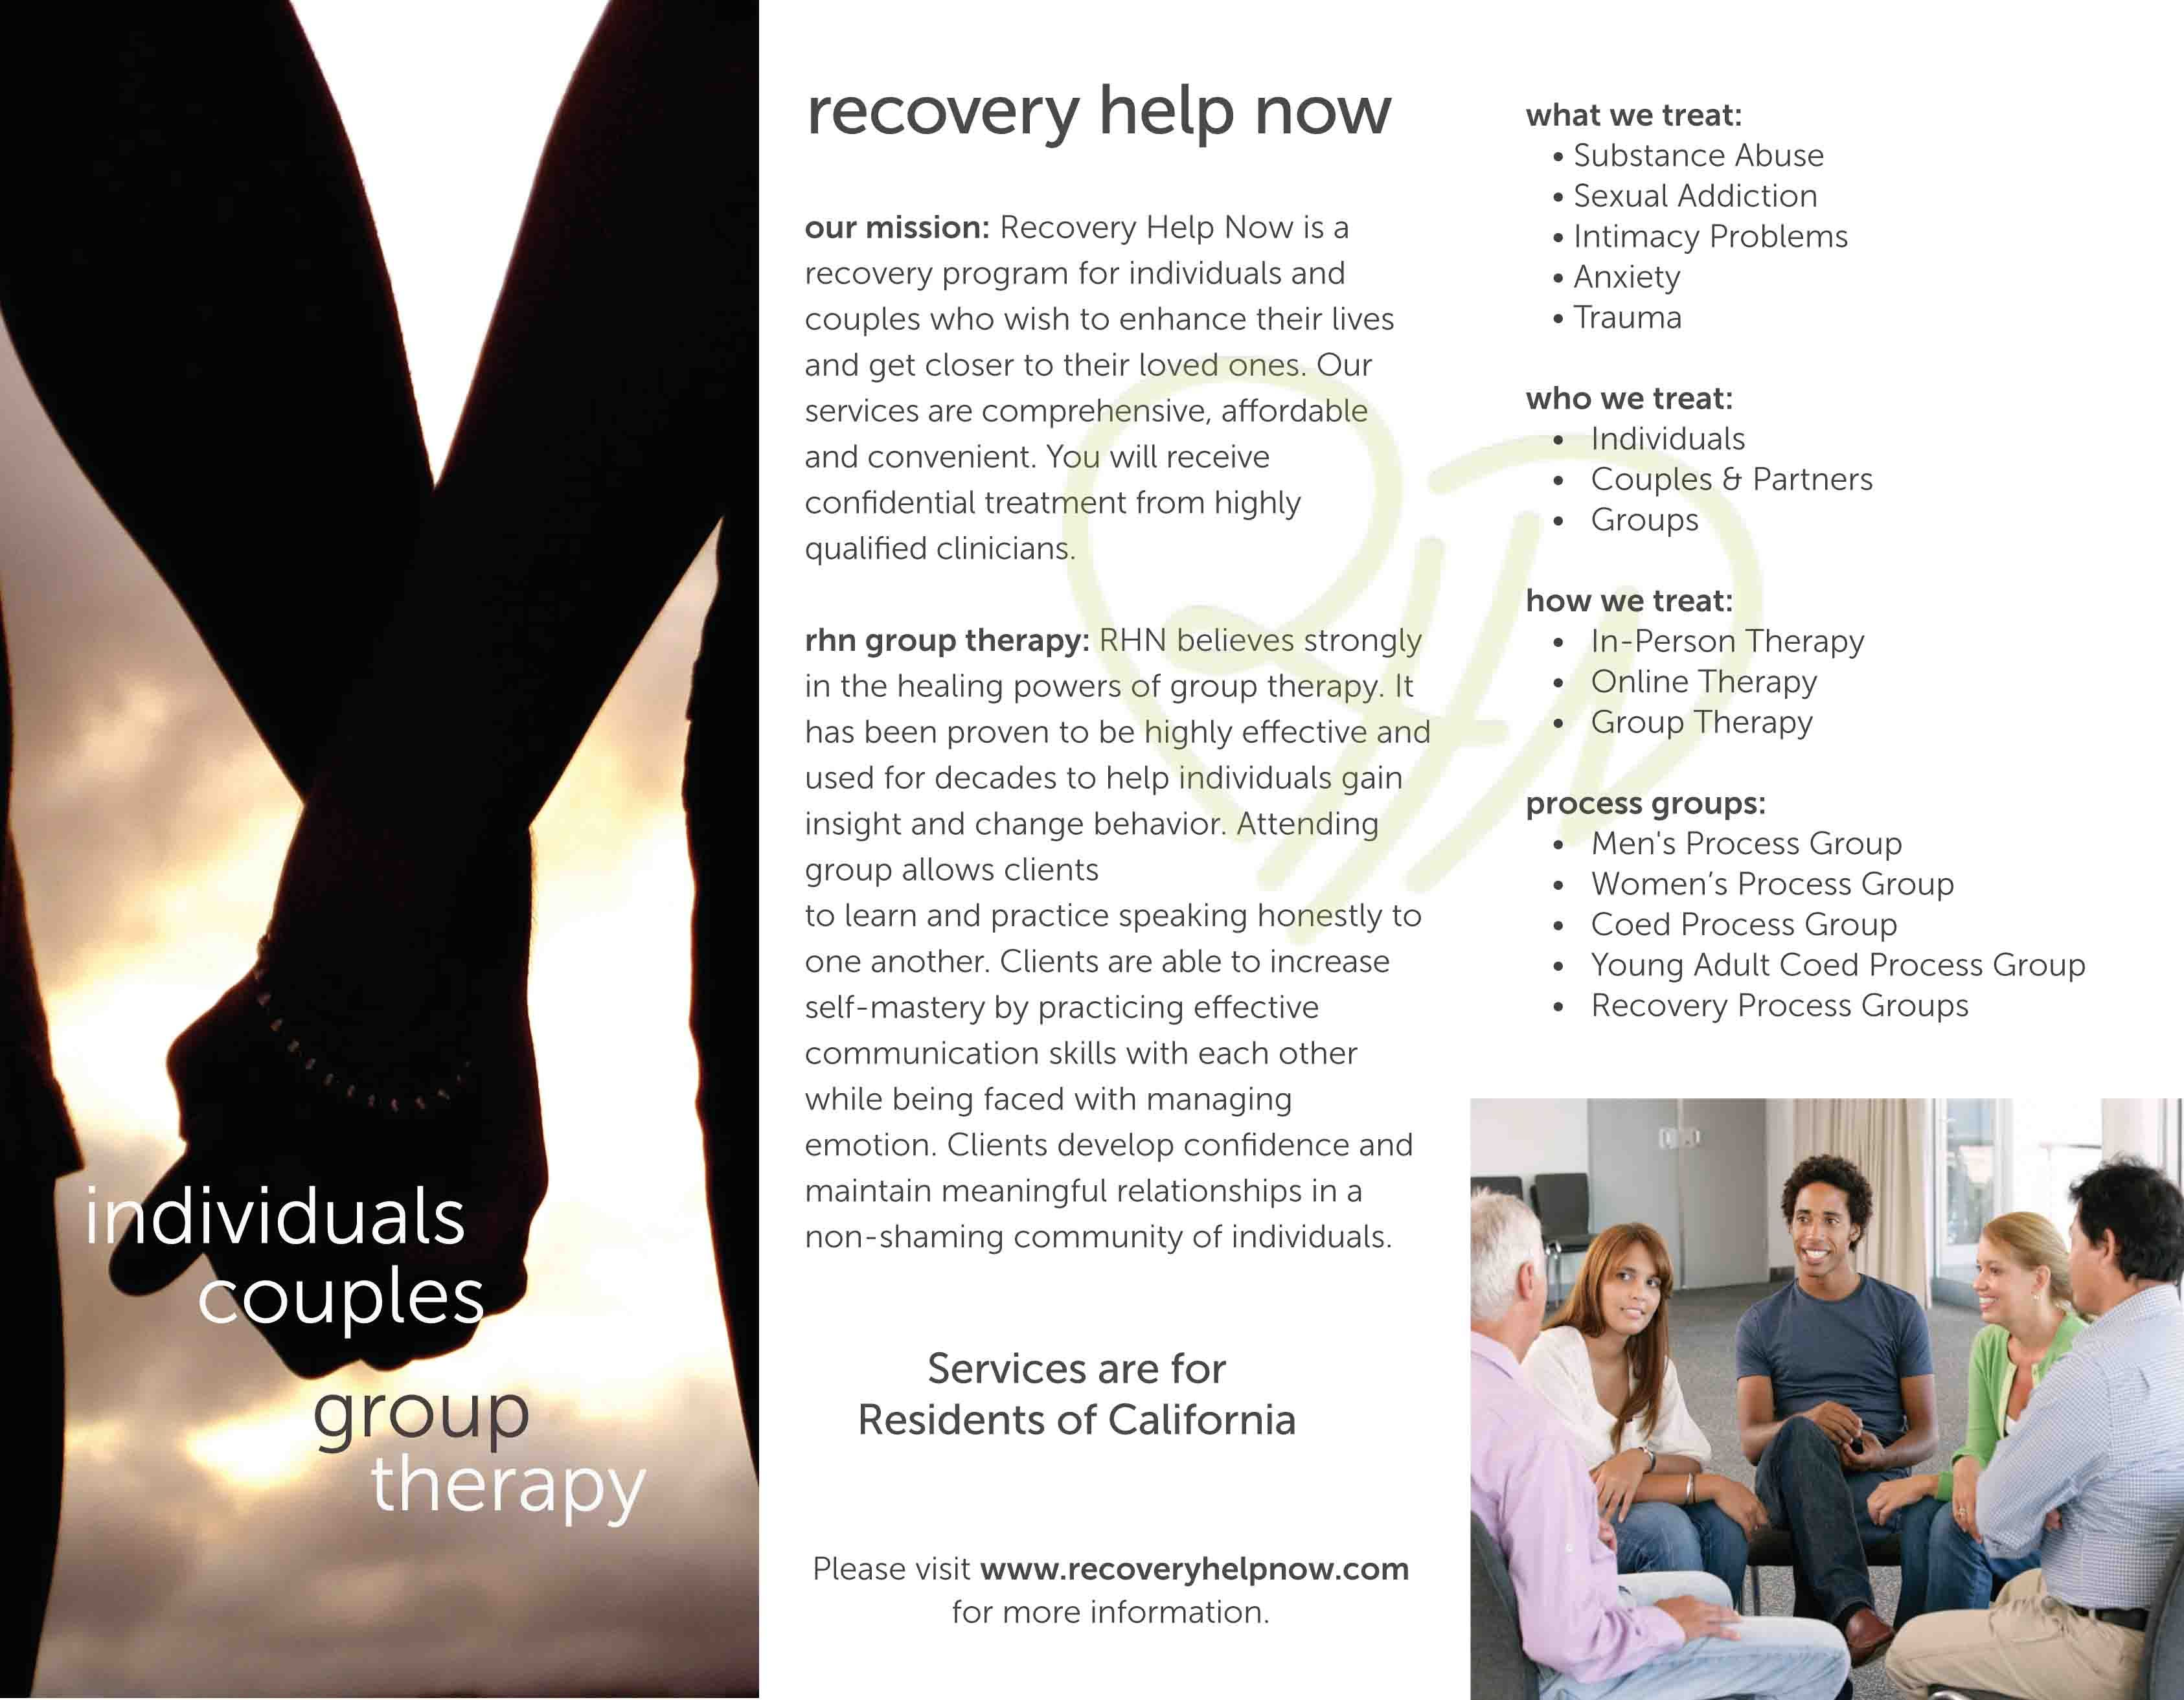 Pin On About Recover Help Now Inc